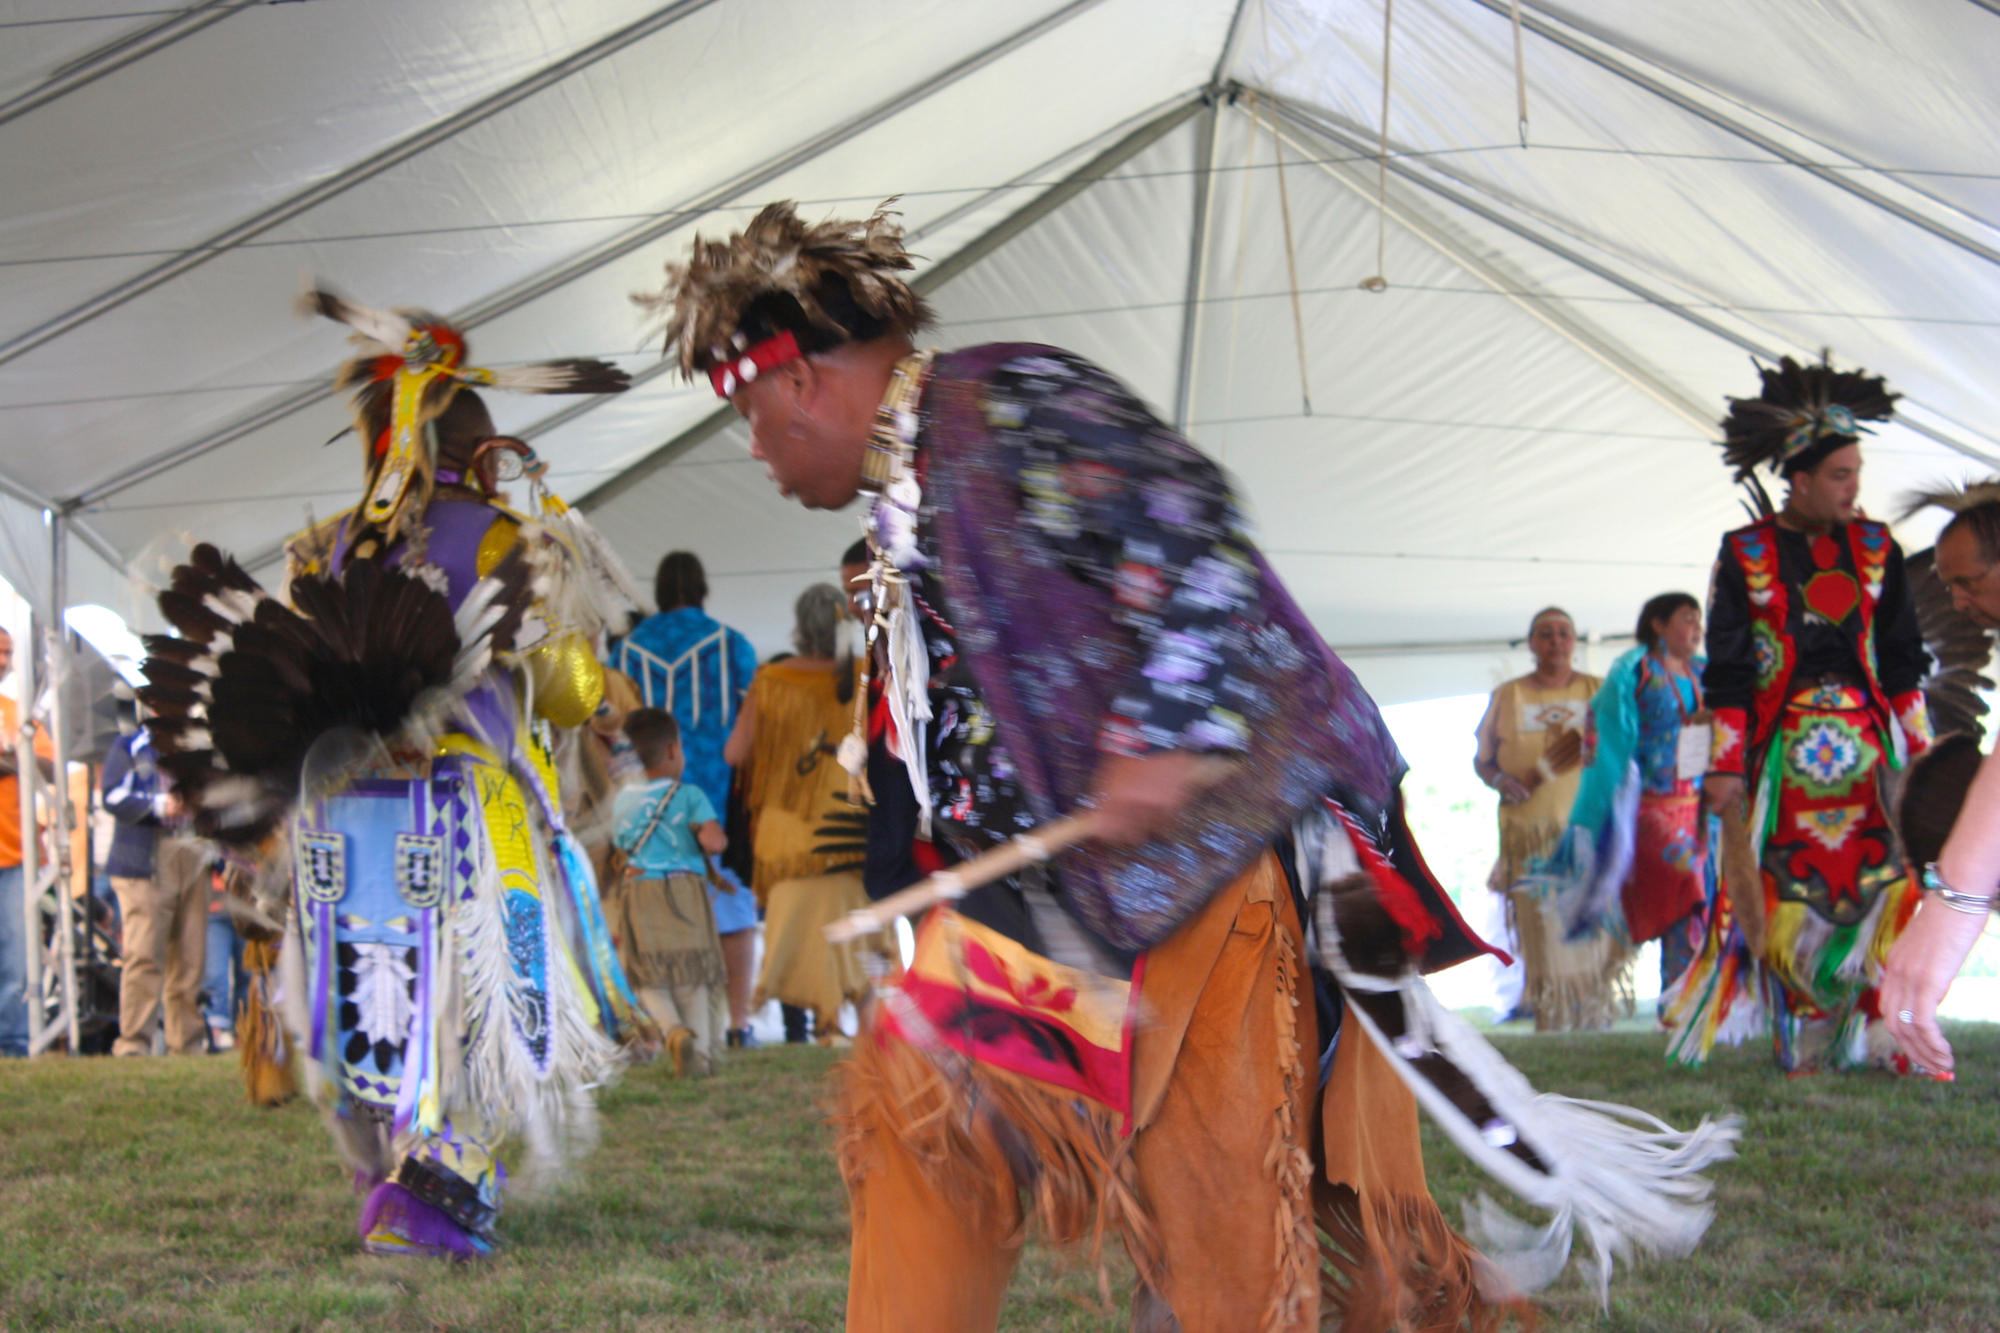 Aquinnah Wampanoag Tribe must keep fighting despite gaming win